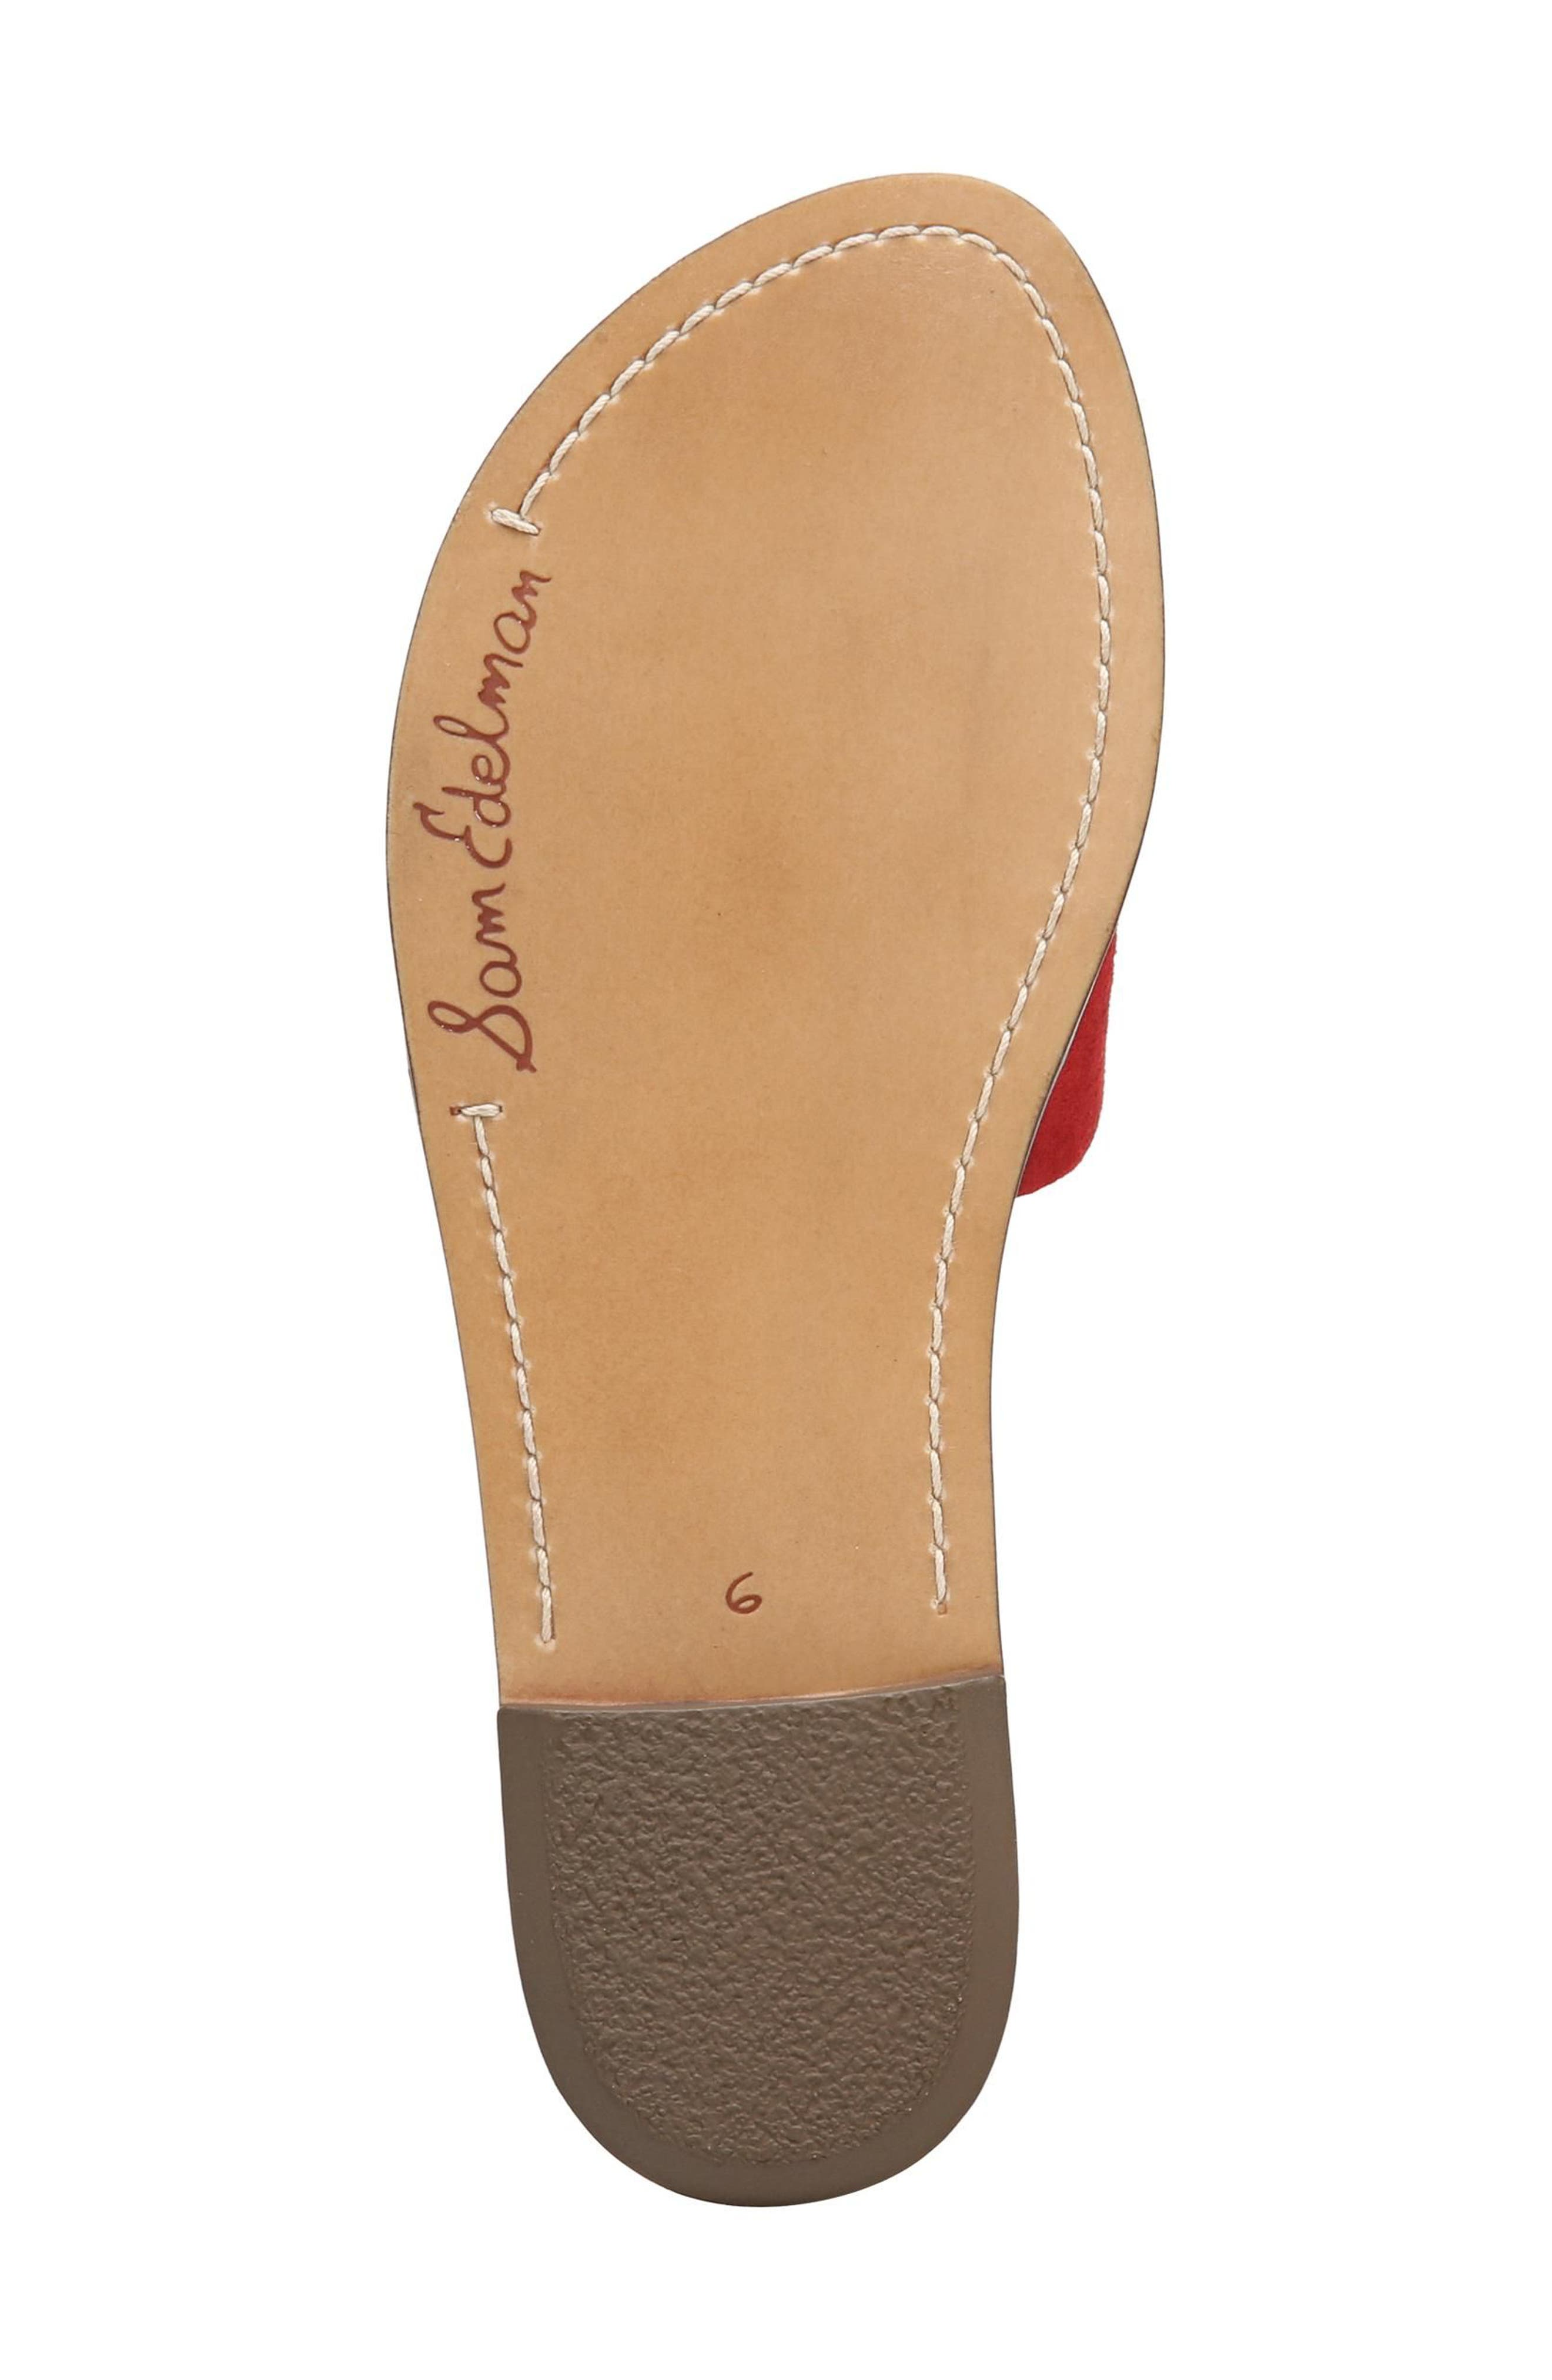 Gio Slide Sandal,                             Alternate thumbnail 6, color,                             Red Suede